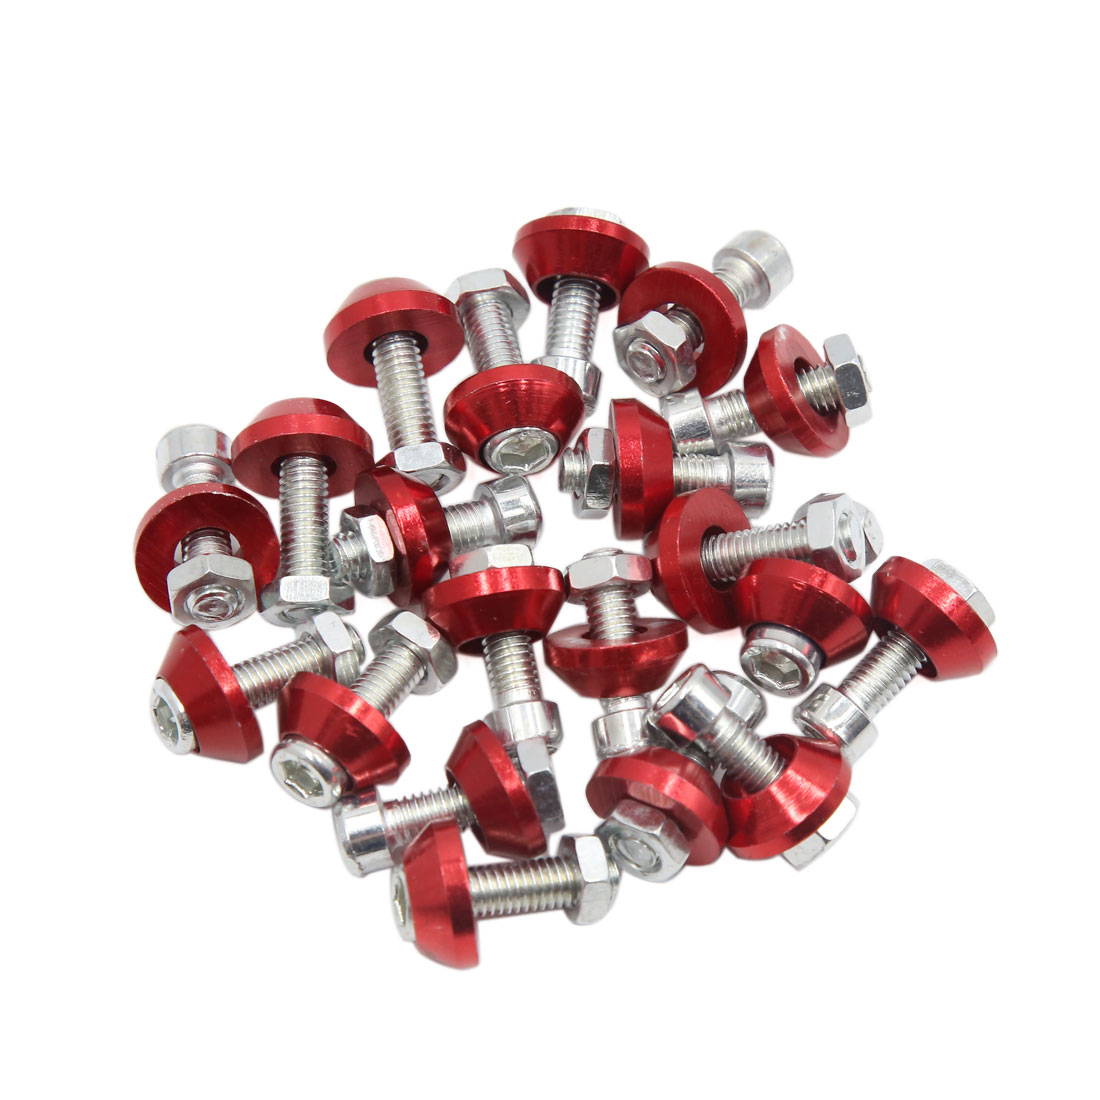 20pcs Red 6mm Thread Diameter Motorcycle License Plate Frame Screws Bolts Caps